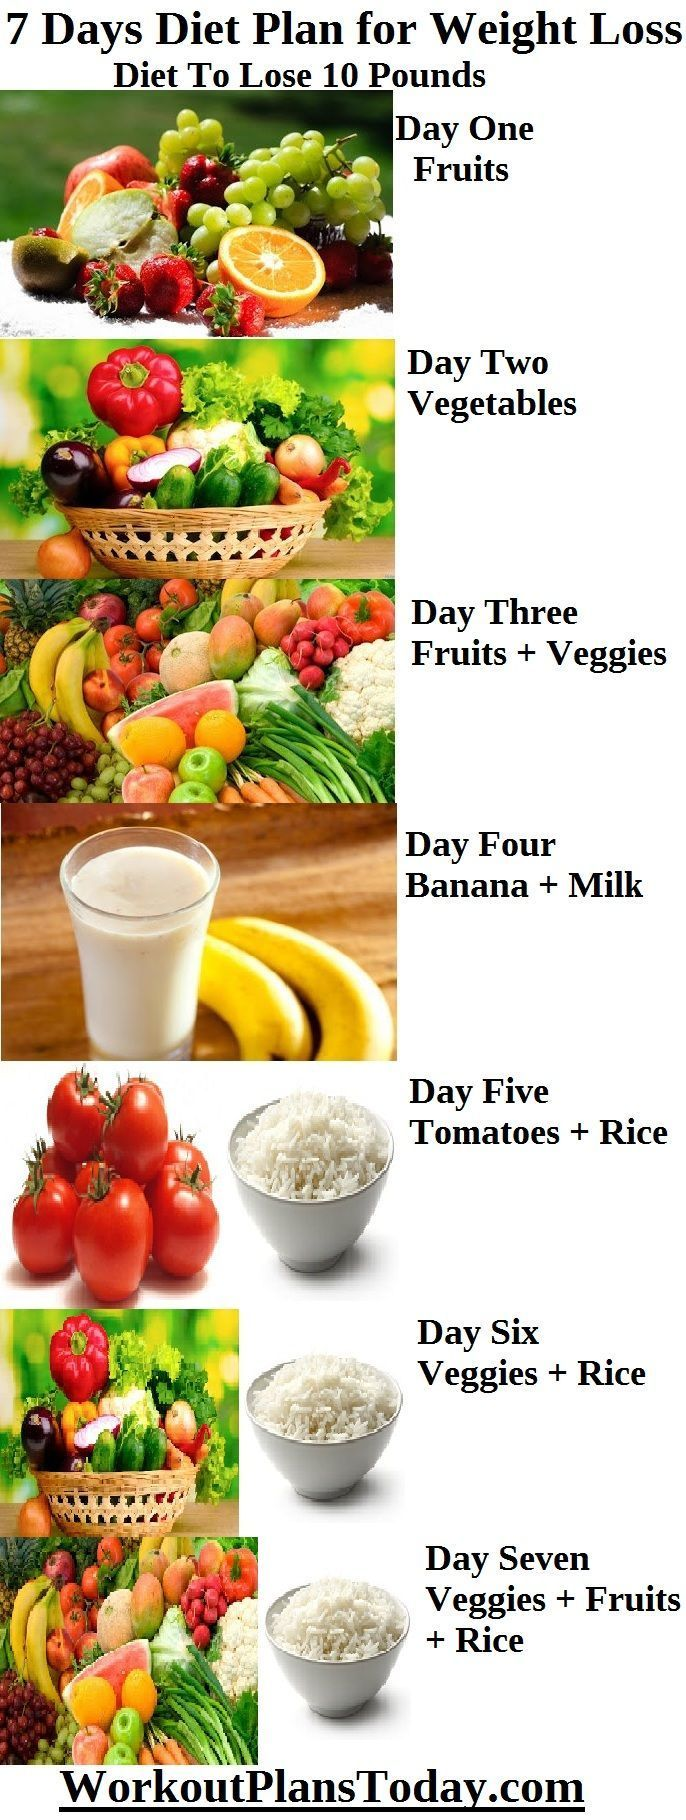 http://www.fat-loss-rapid.info/ Weight Loss - Diet To Lose 10 Pounds Day